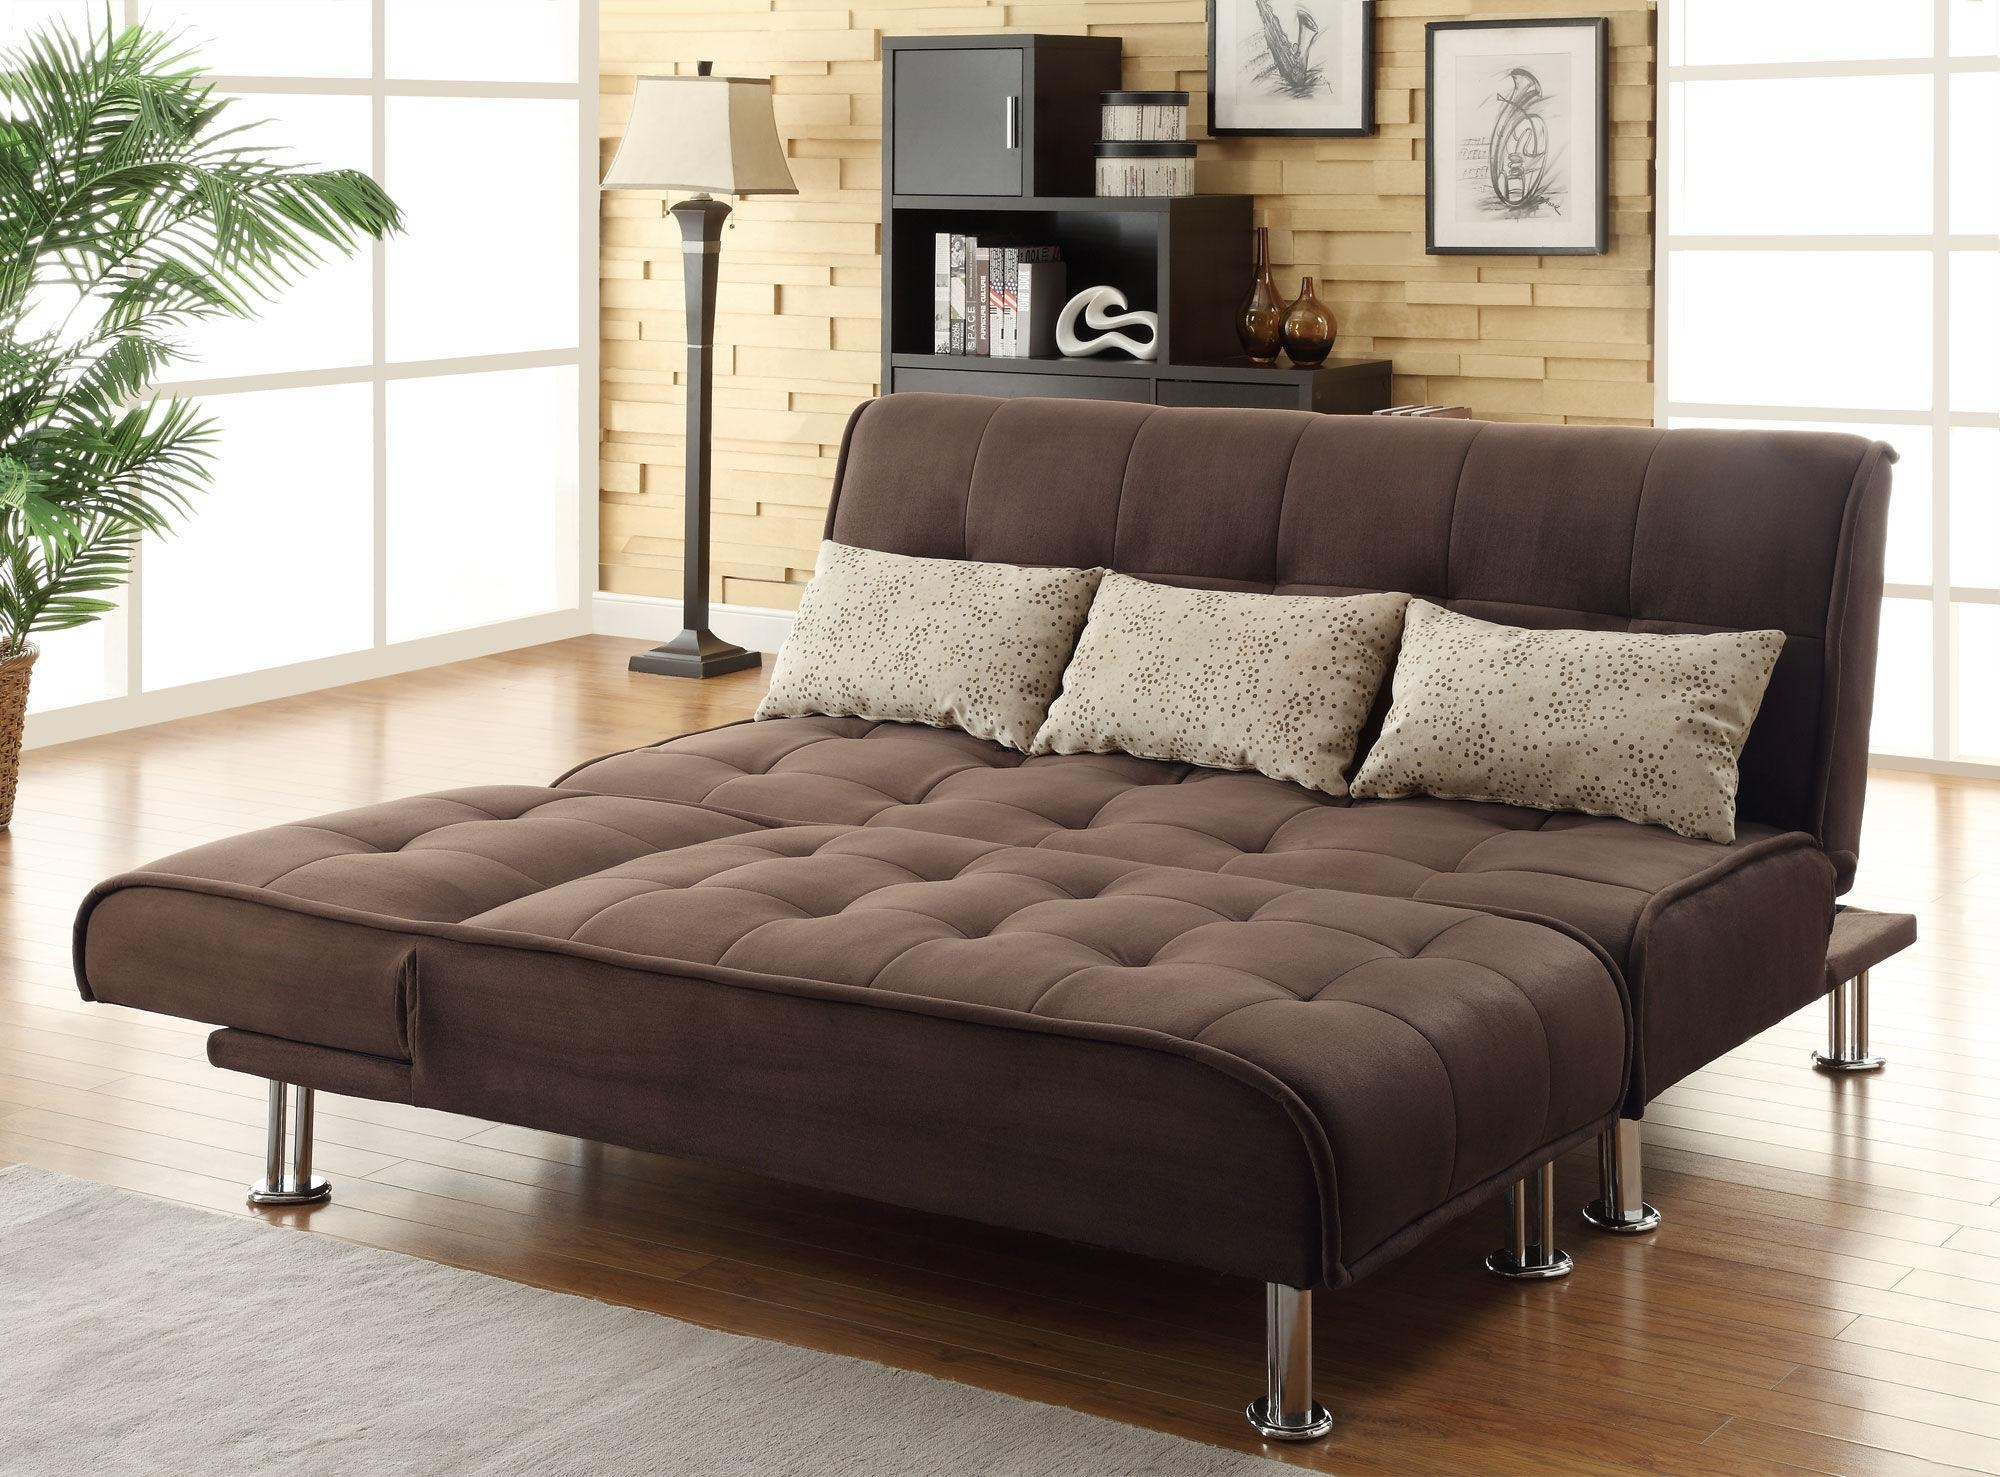 Sofas Center : Innovative Queen Size Sofa Sleeper Fancy Interior Intended For Convertible Queen Sofas (Image 18 of 20)